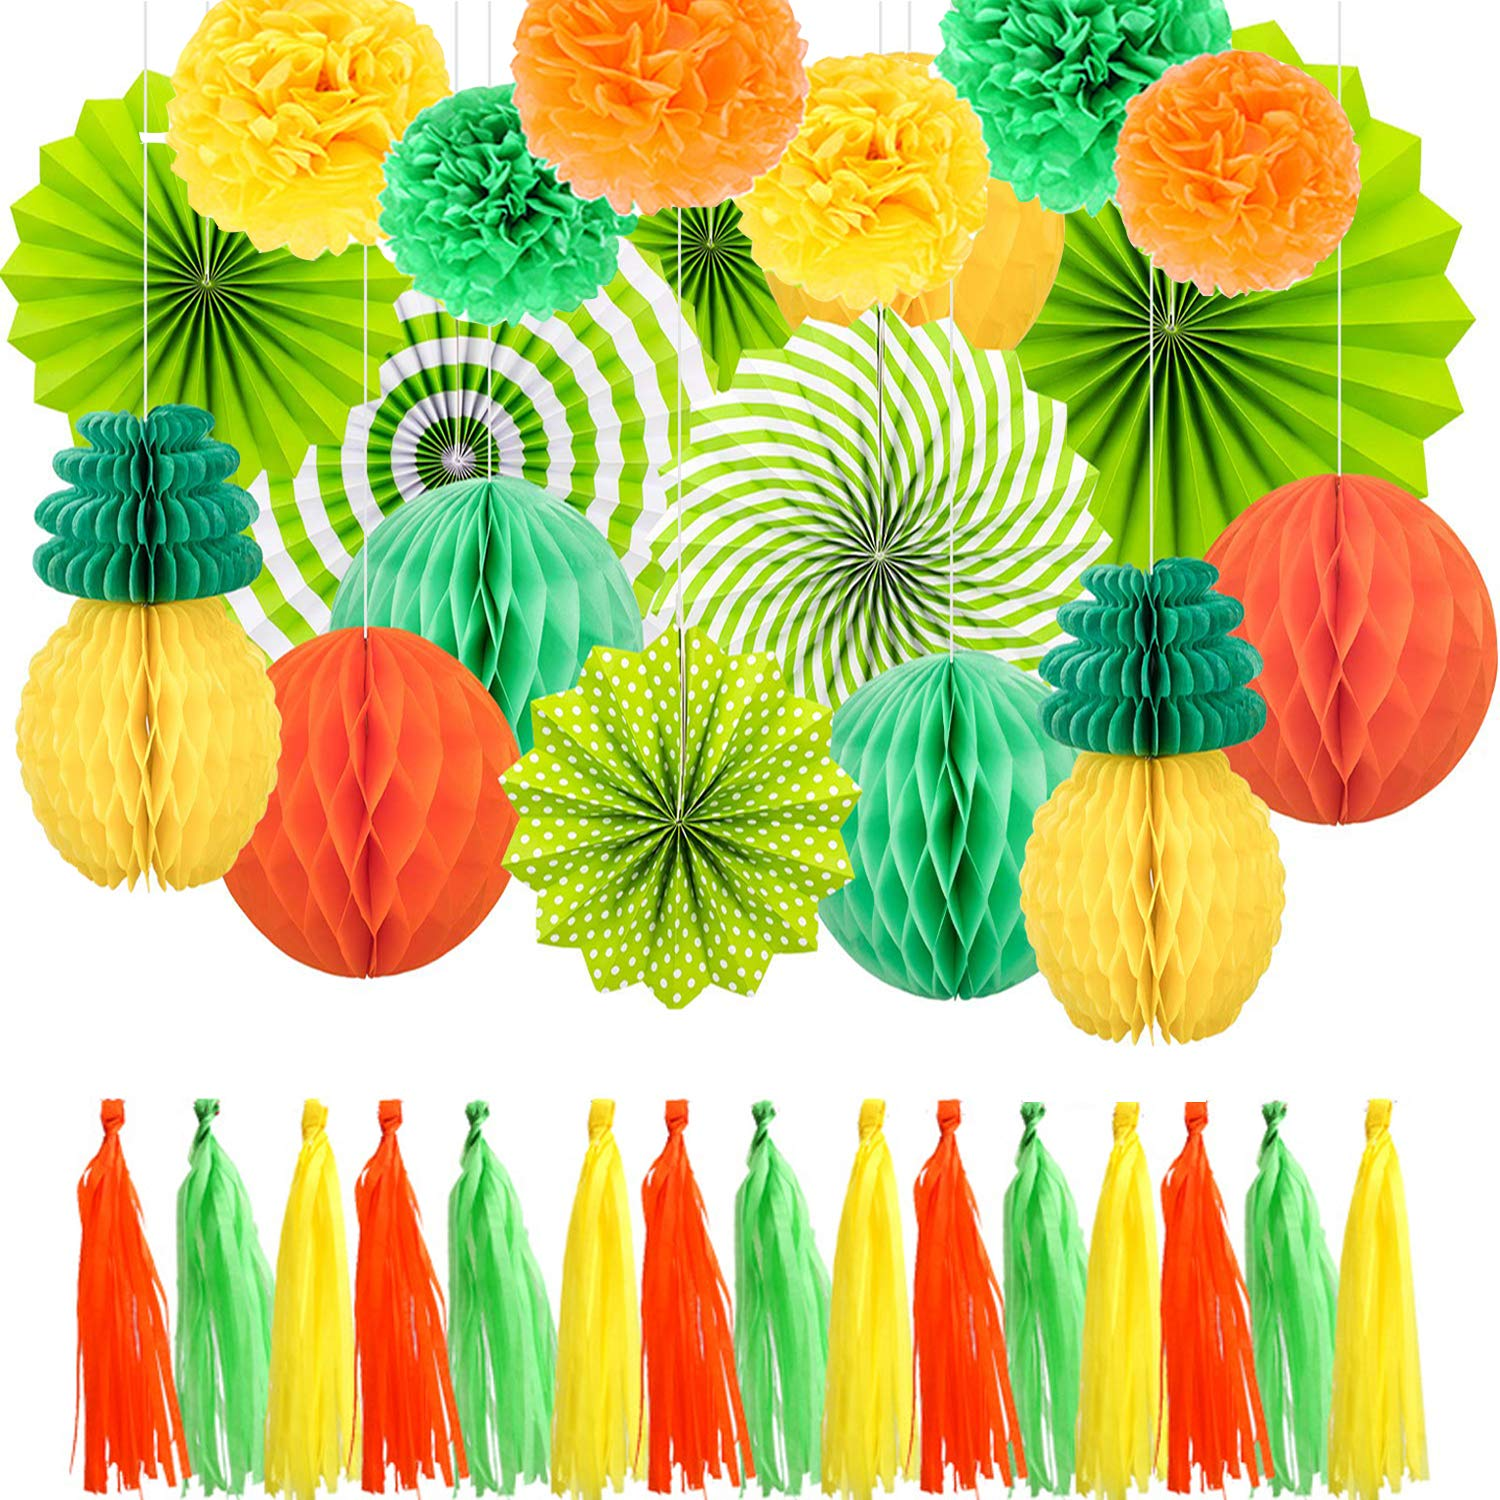 34 PCS Hawaiian Tropical Luau Theme Party Decorations Set, Summer Party Decoration Include Paper Pineapples, Paper Flower Ball, Paper Fans, Honeycomb Balls, Tassel for Aloha Decor